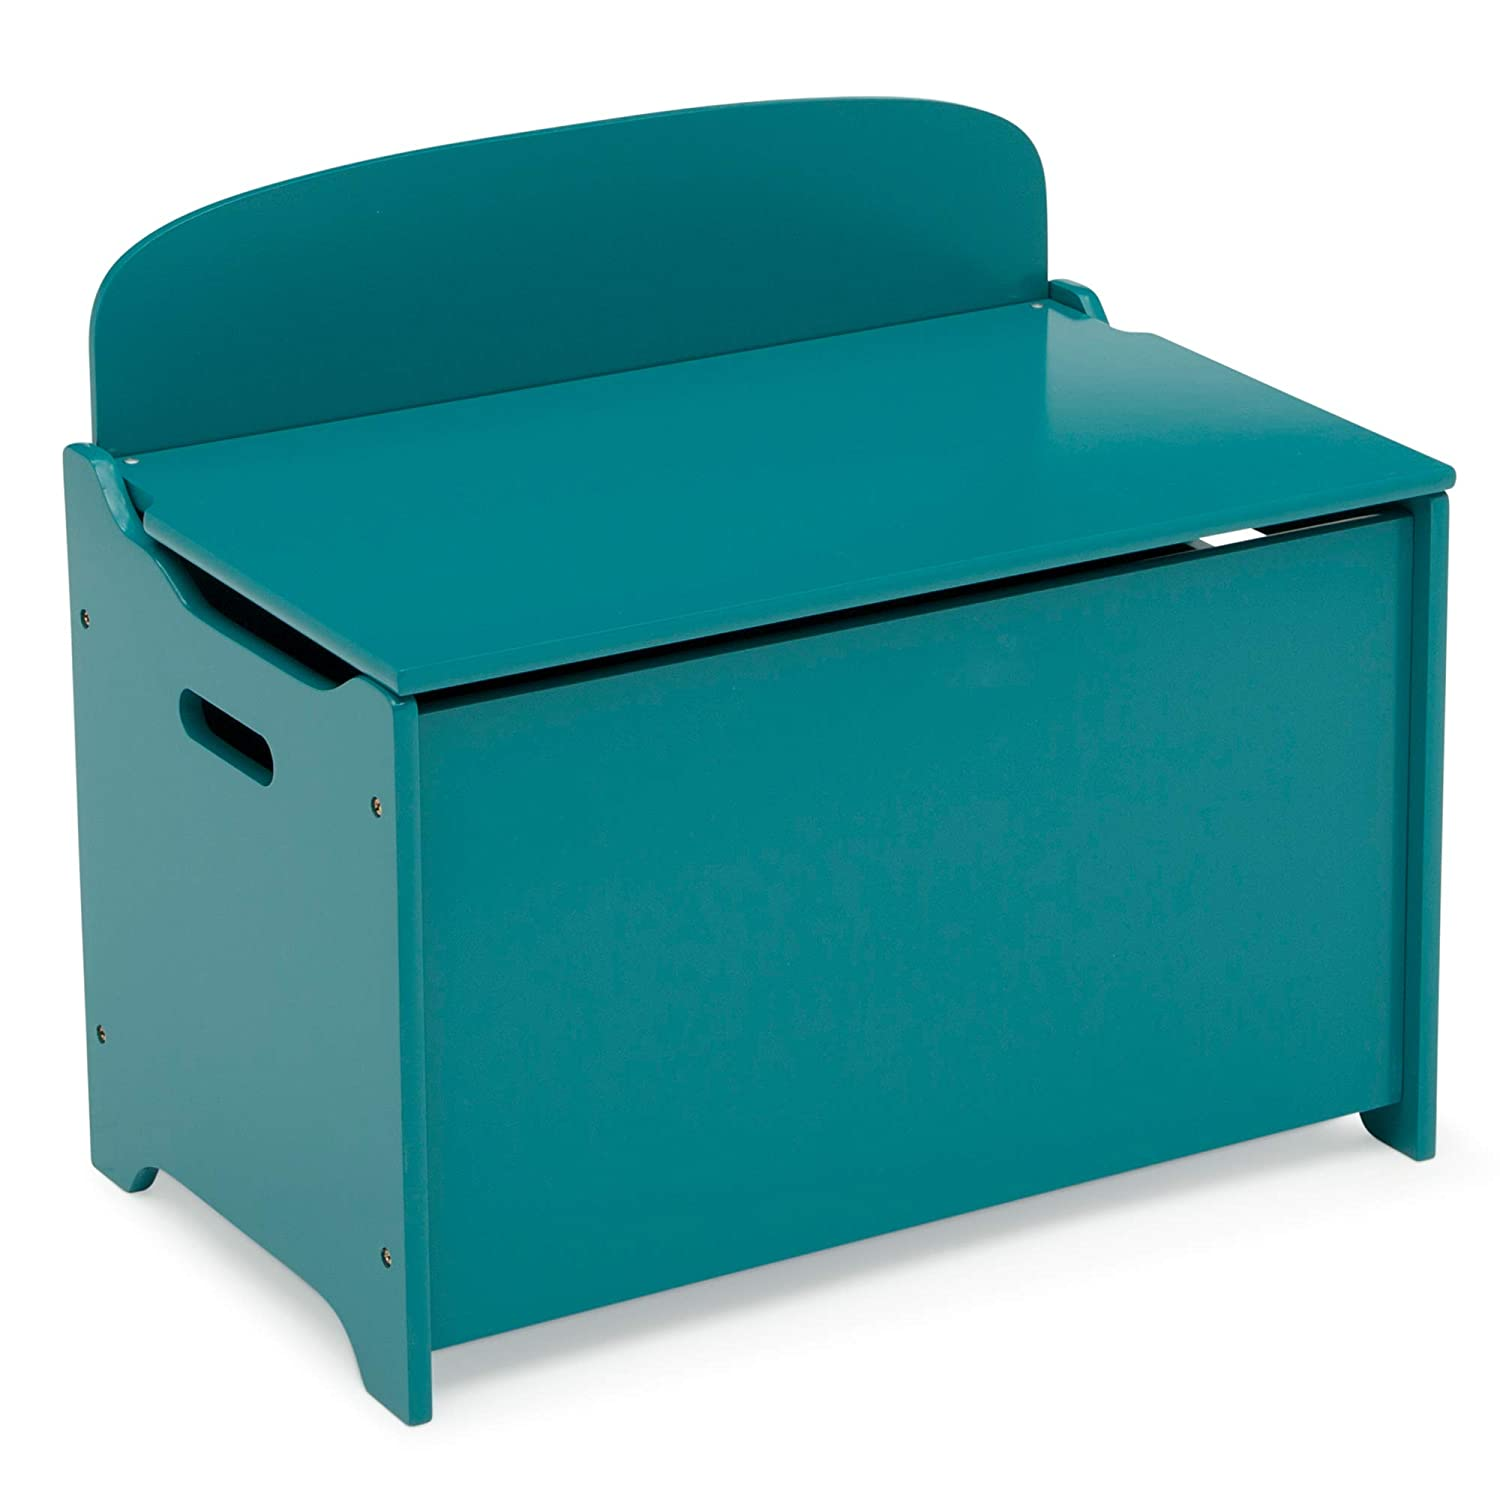 Delta Children MySize Deluxe Toy Box, Teal